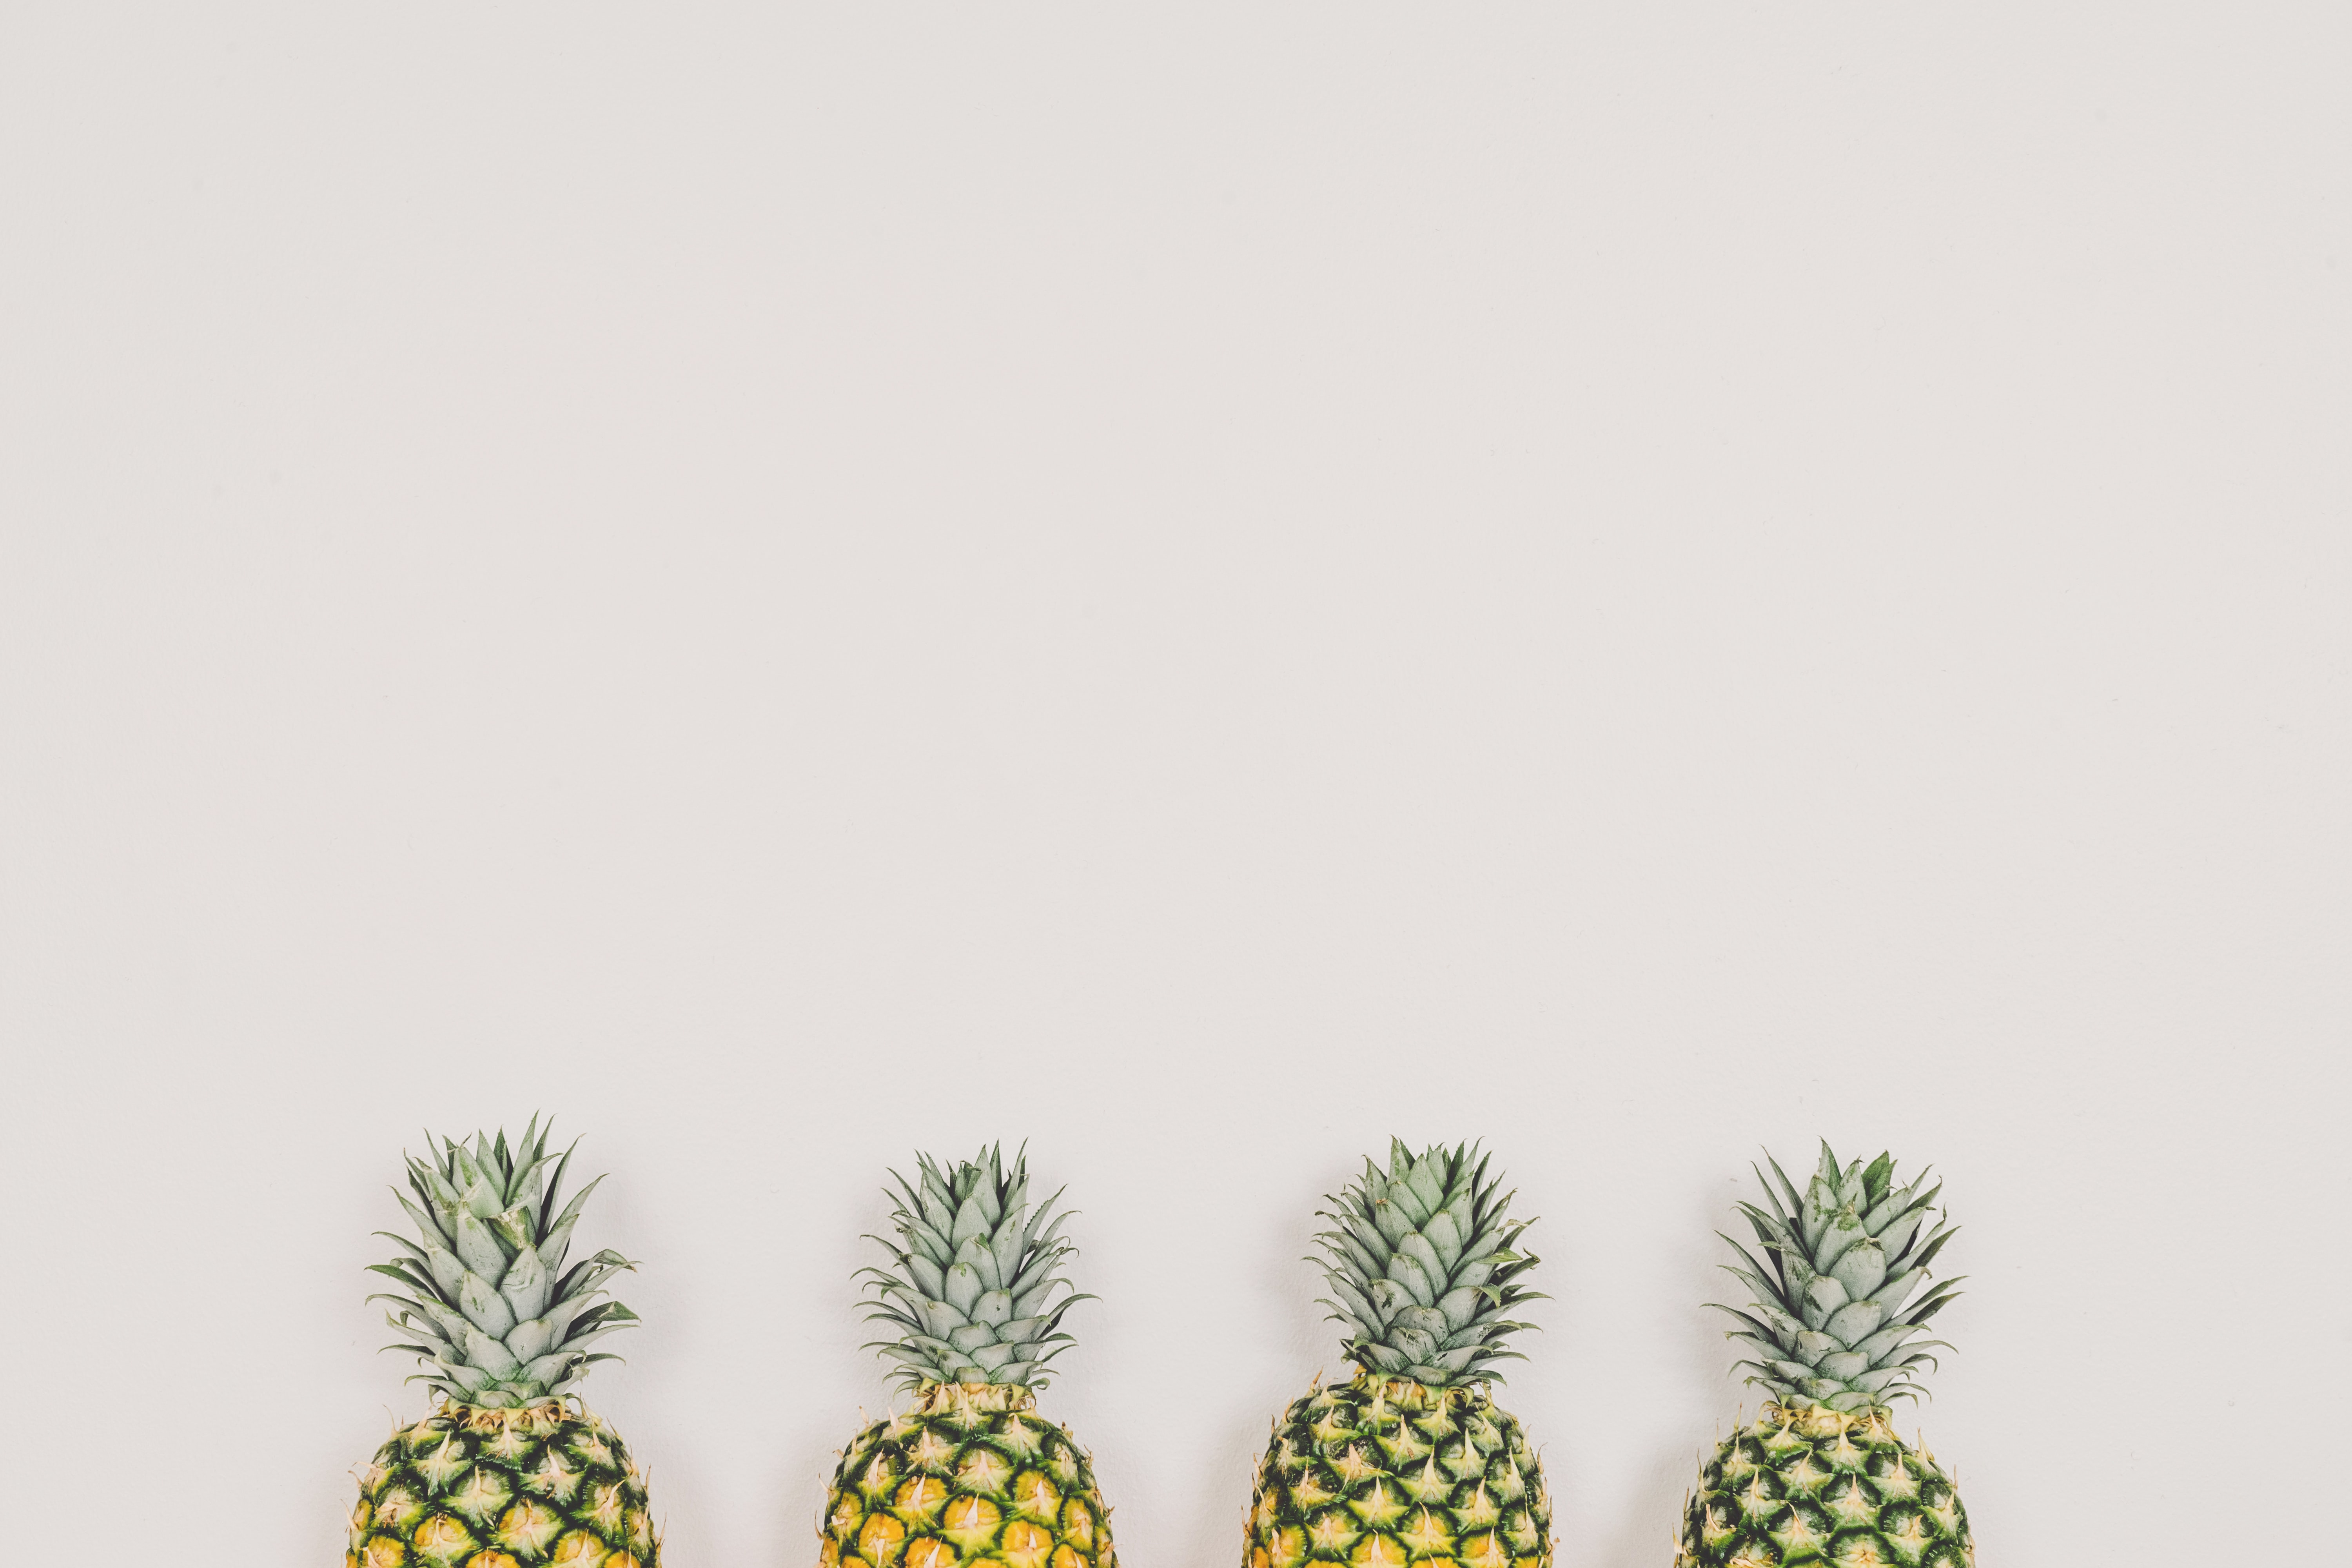 Four pineapples arranged in a row against a white wall